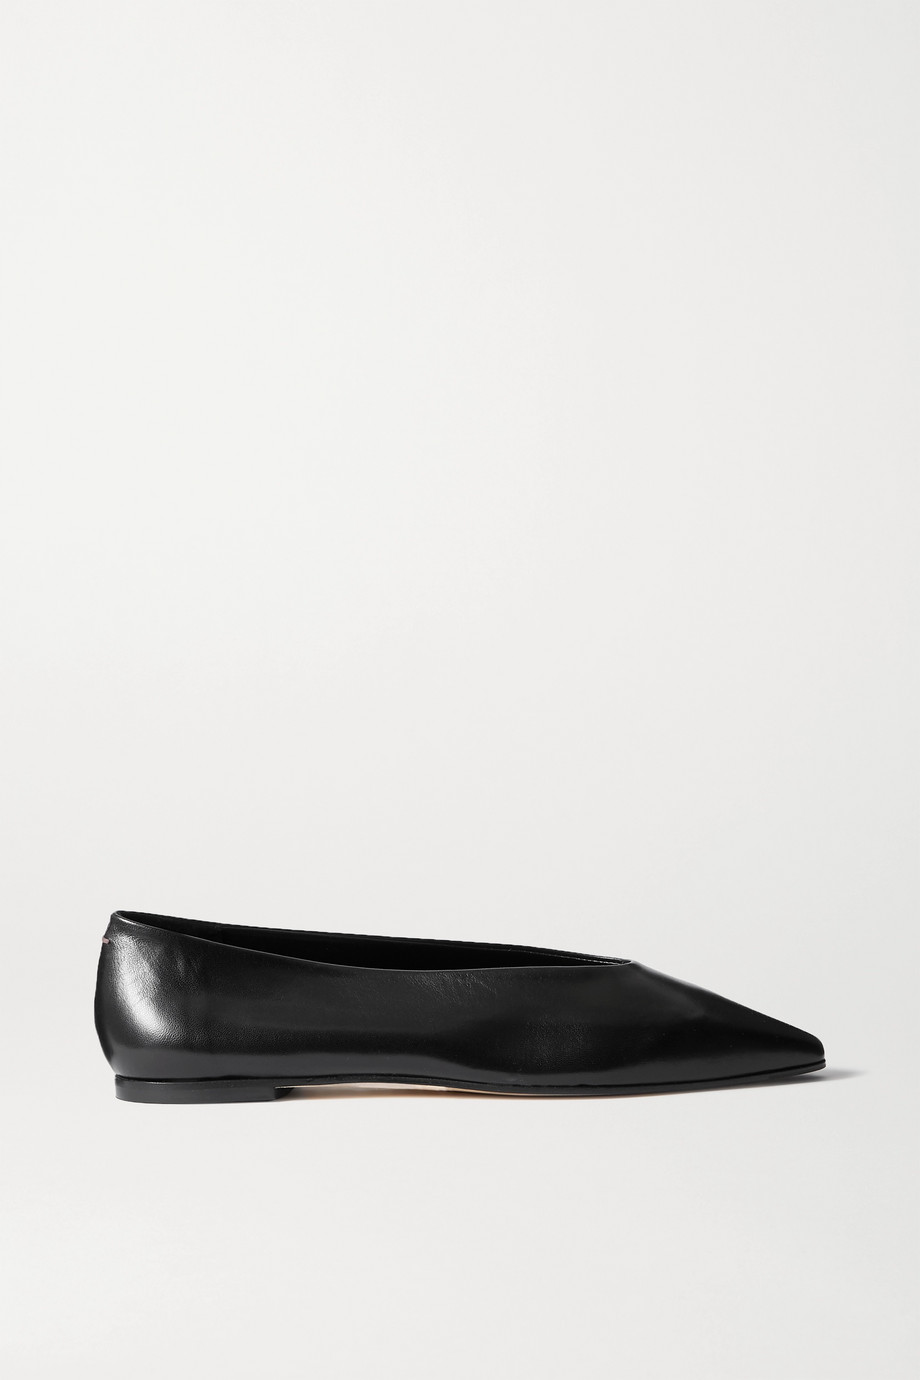 aeyde Betty leather flats